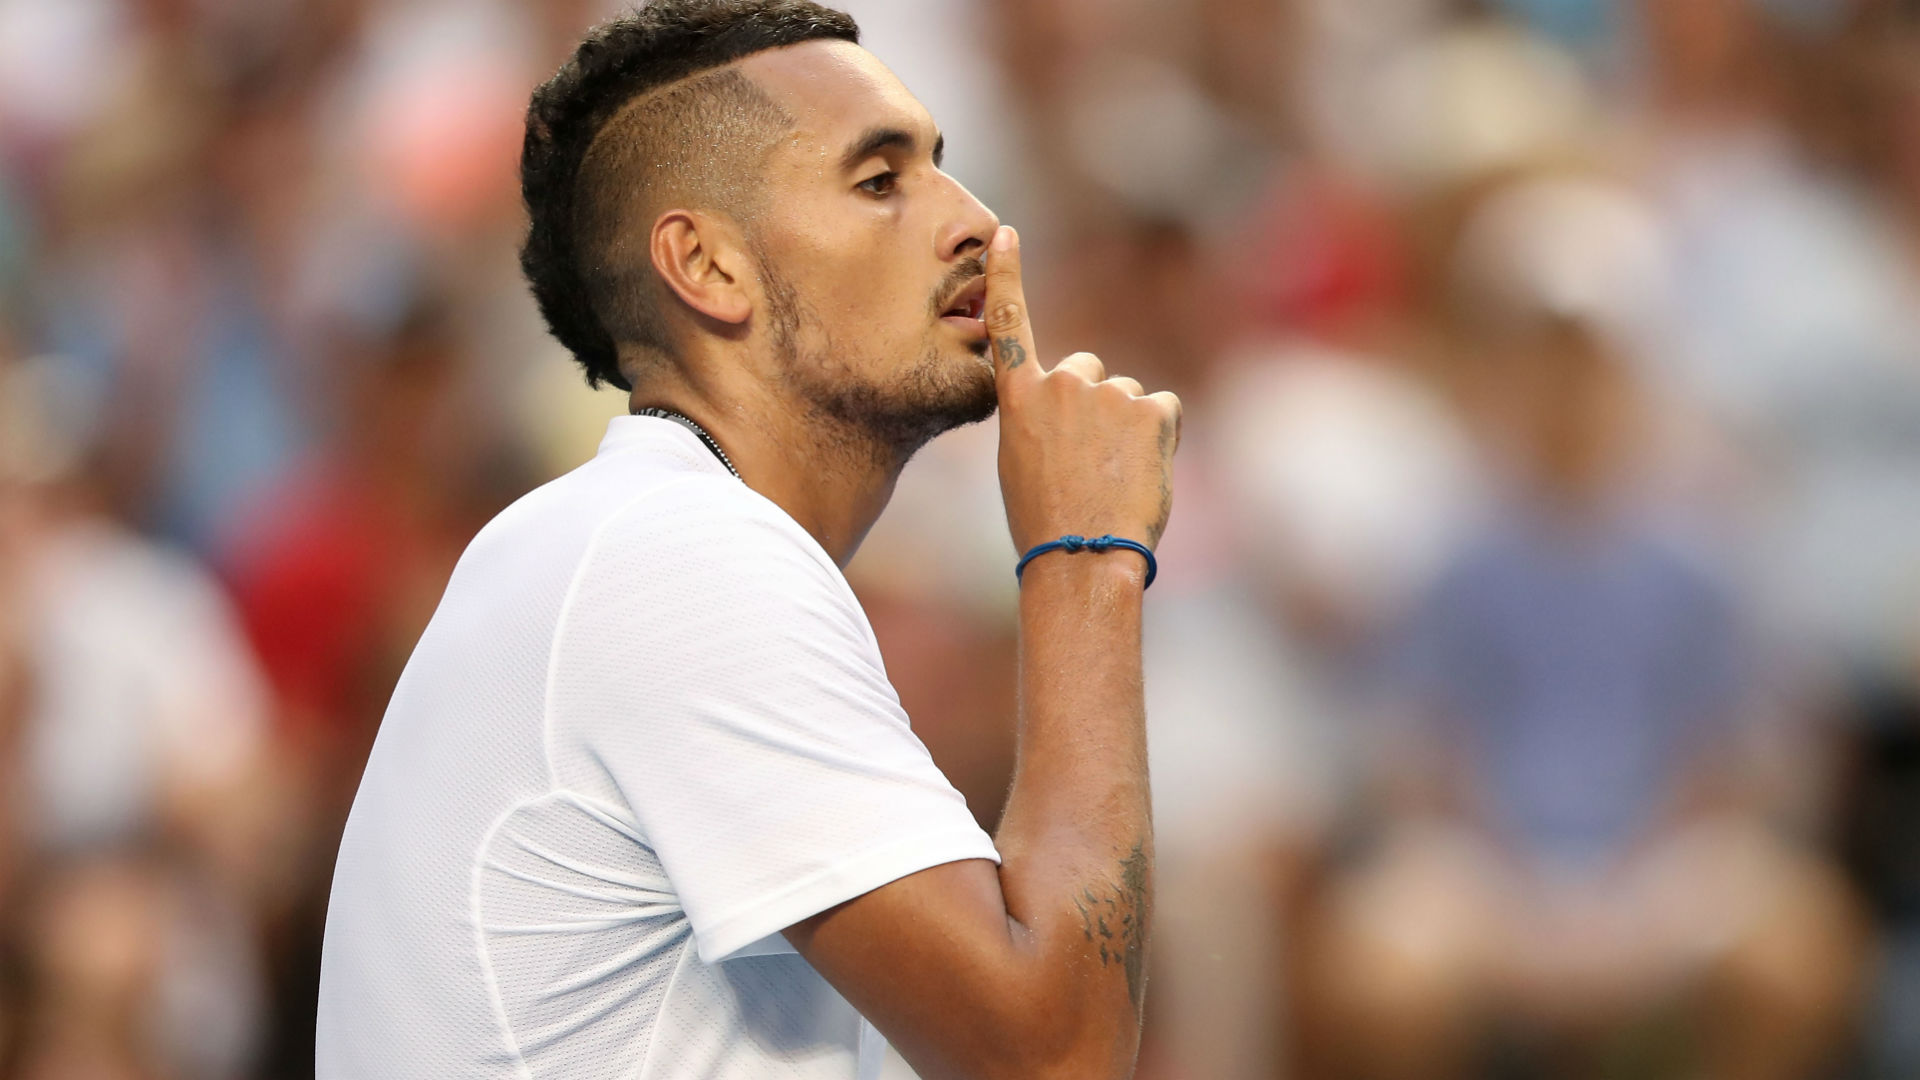 Social media savages Nick Kyrgios